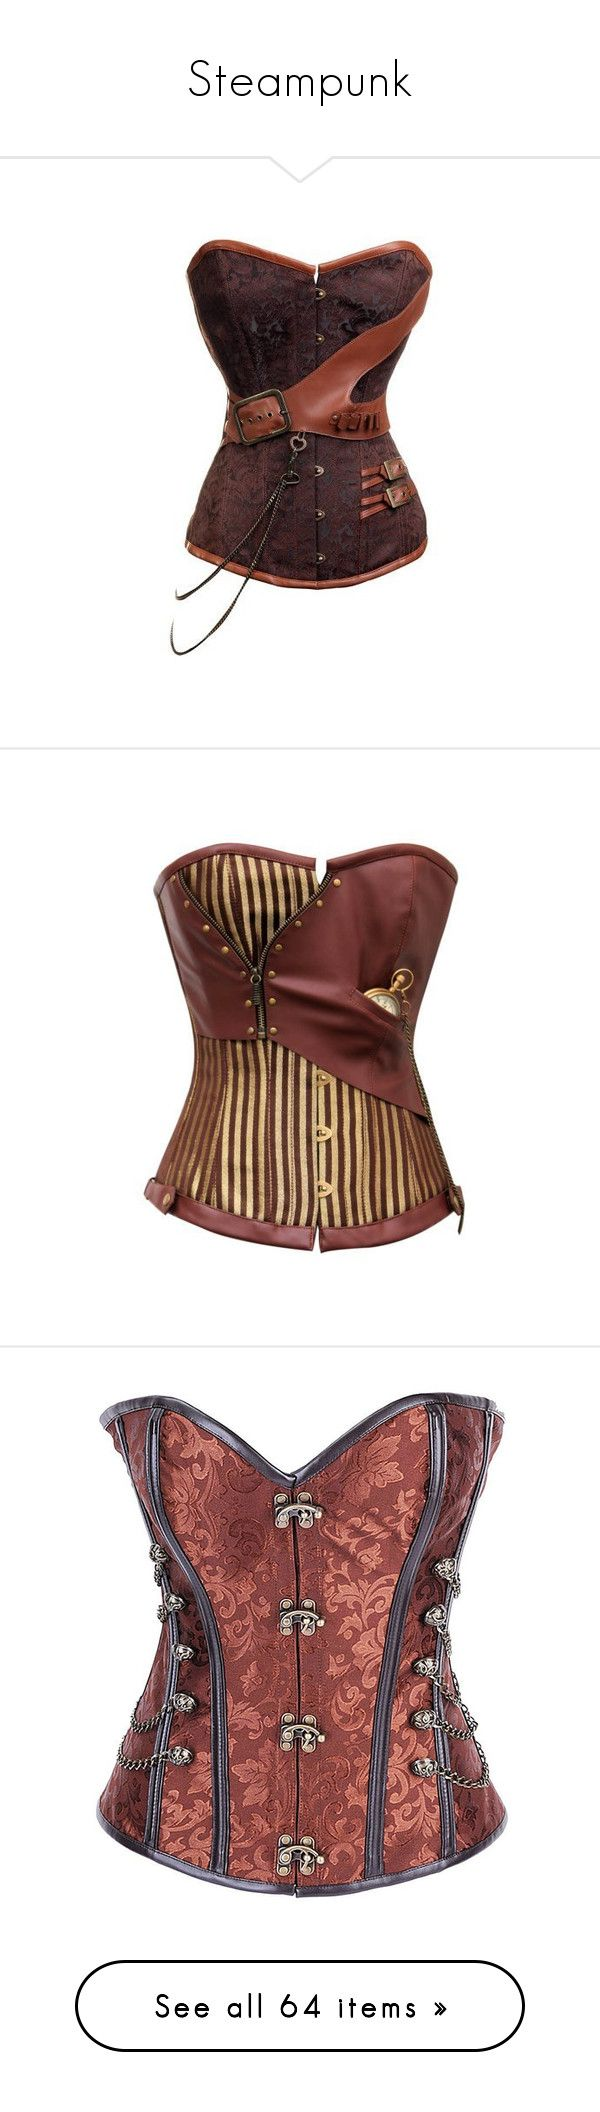 """""""Steampunk"""" by roseunspindle ❤ liked on Polyvore featuring corsets, tops, intimates, shapewear, corset, steampunk, lingerie, shirts, steam punk and blouses"""